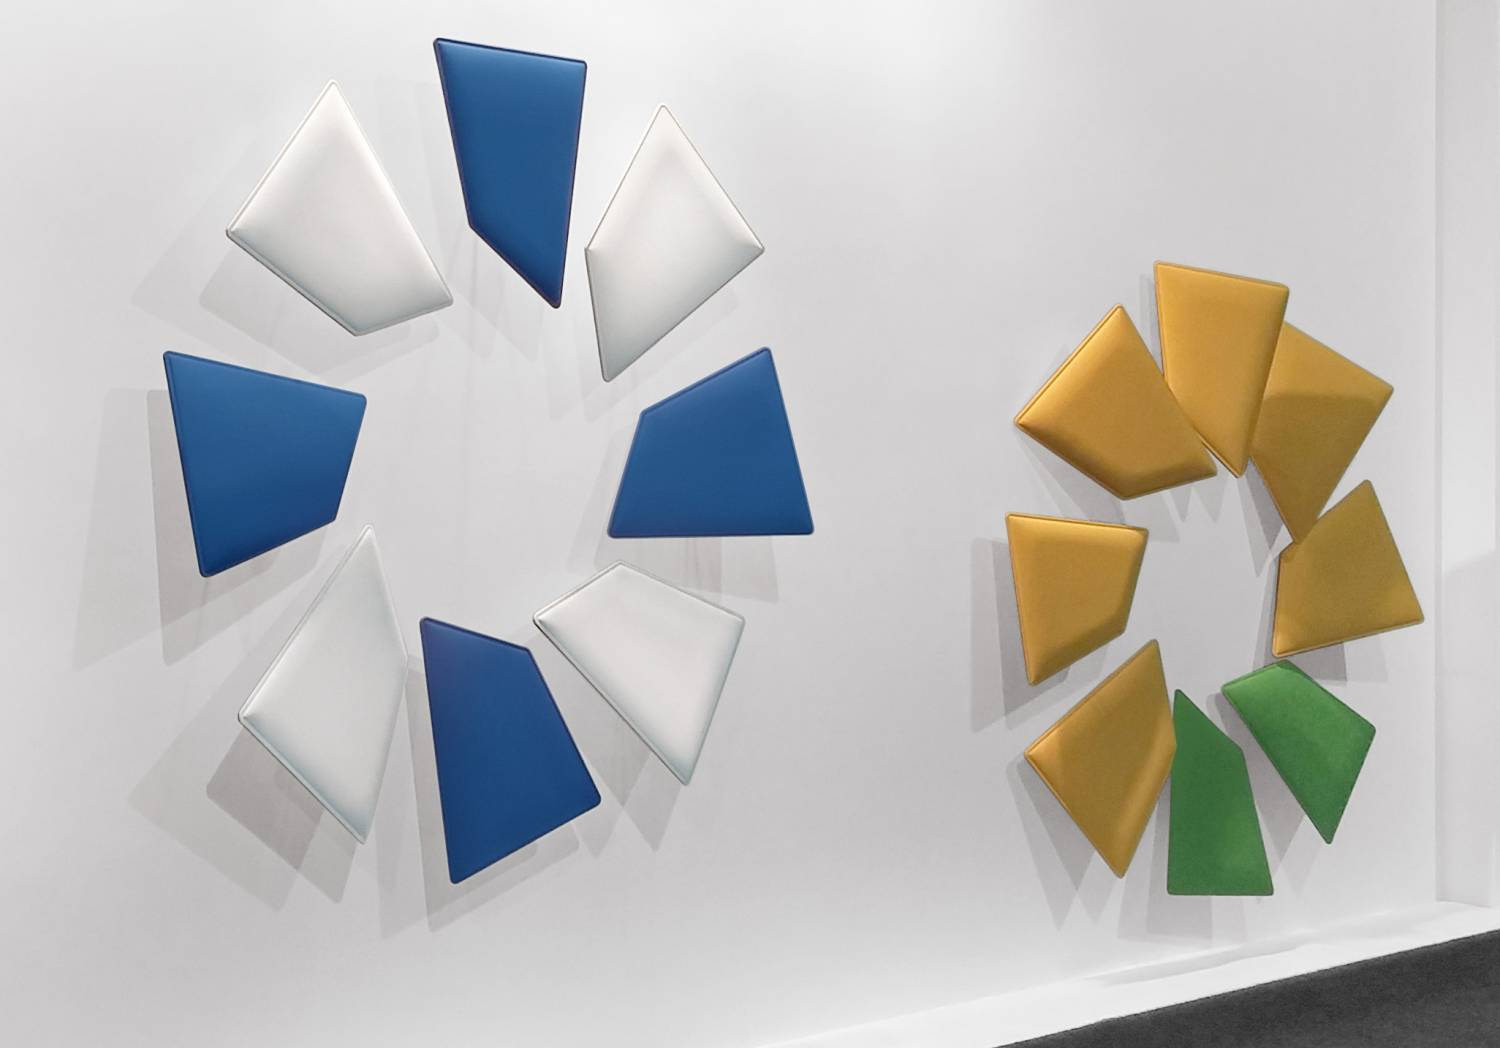 Flap-Wall-Mounted-Acoustic-Panels-With-Backlighting-In-Contemporary-Layout